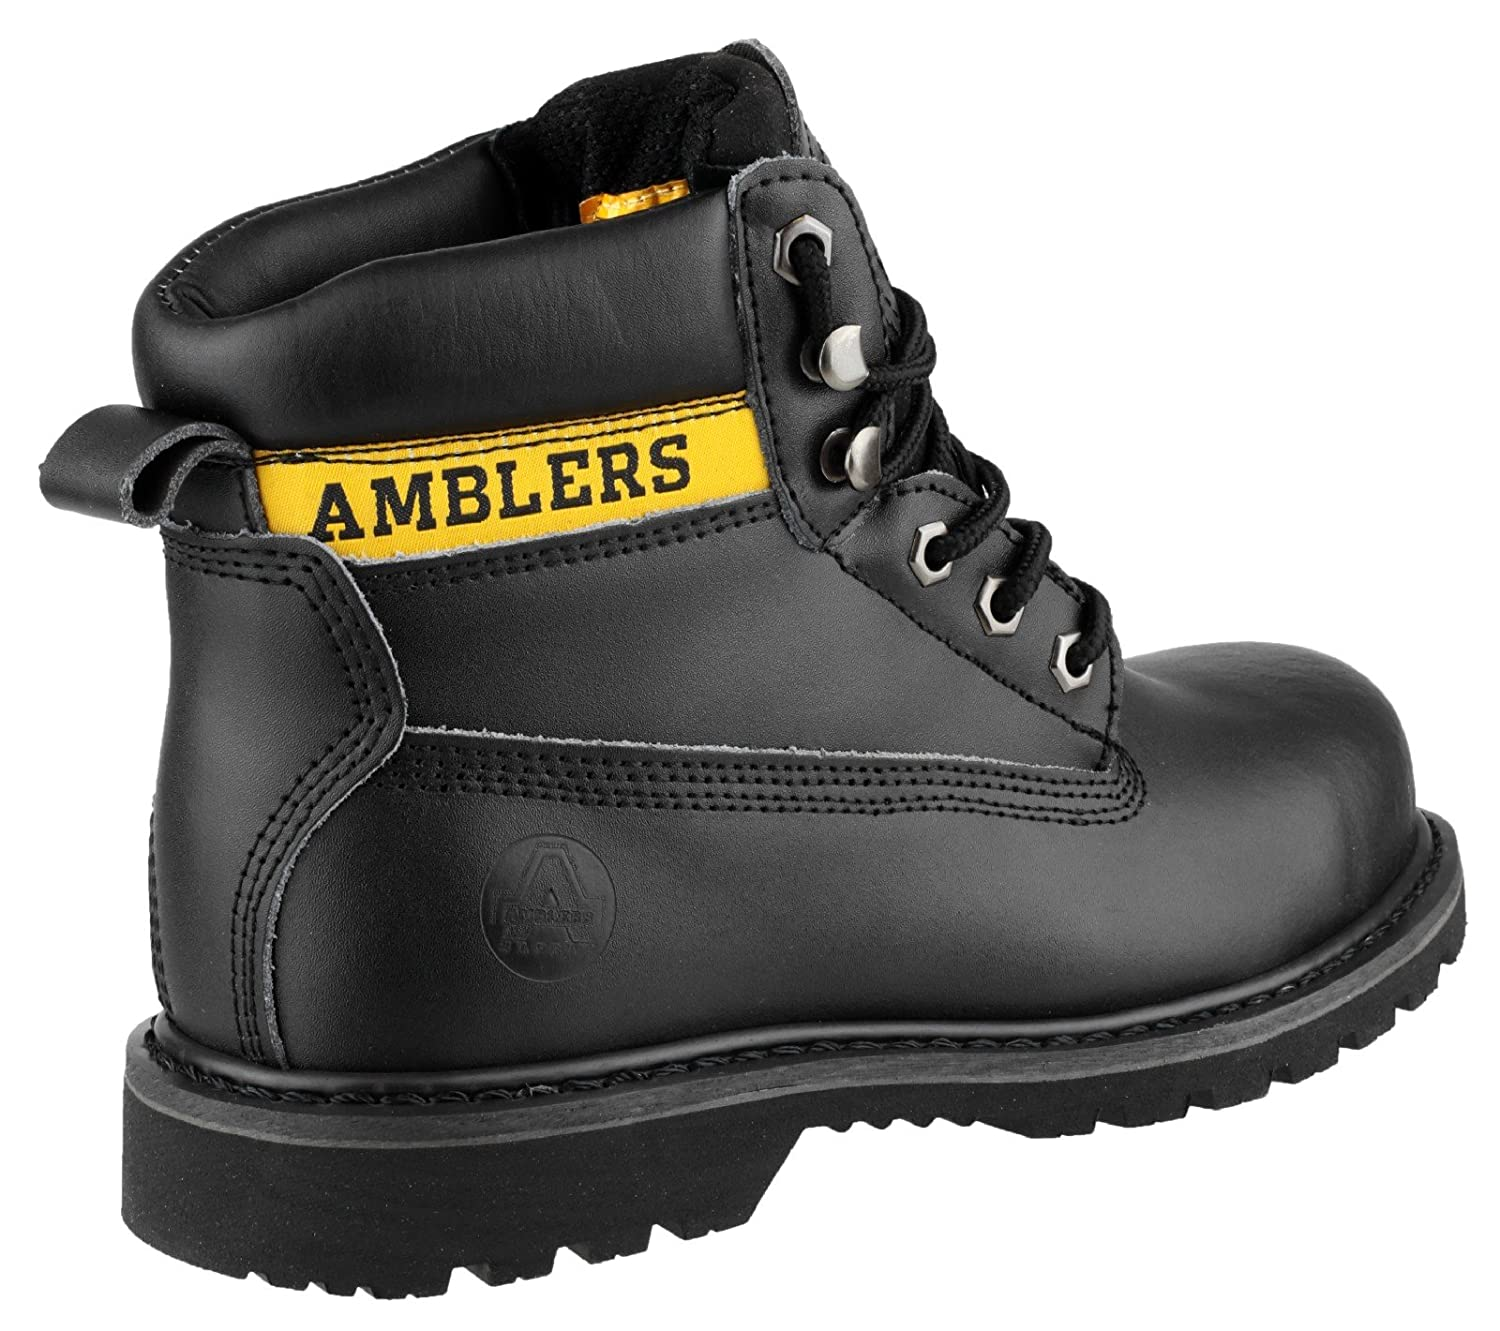 2535c1a6219 Amblers Safety FS9 Unisex SB SRA Steel Safety Boots Black